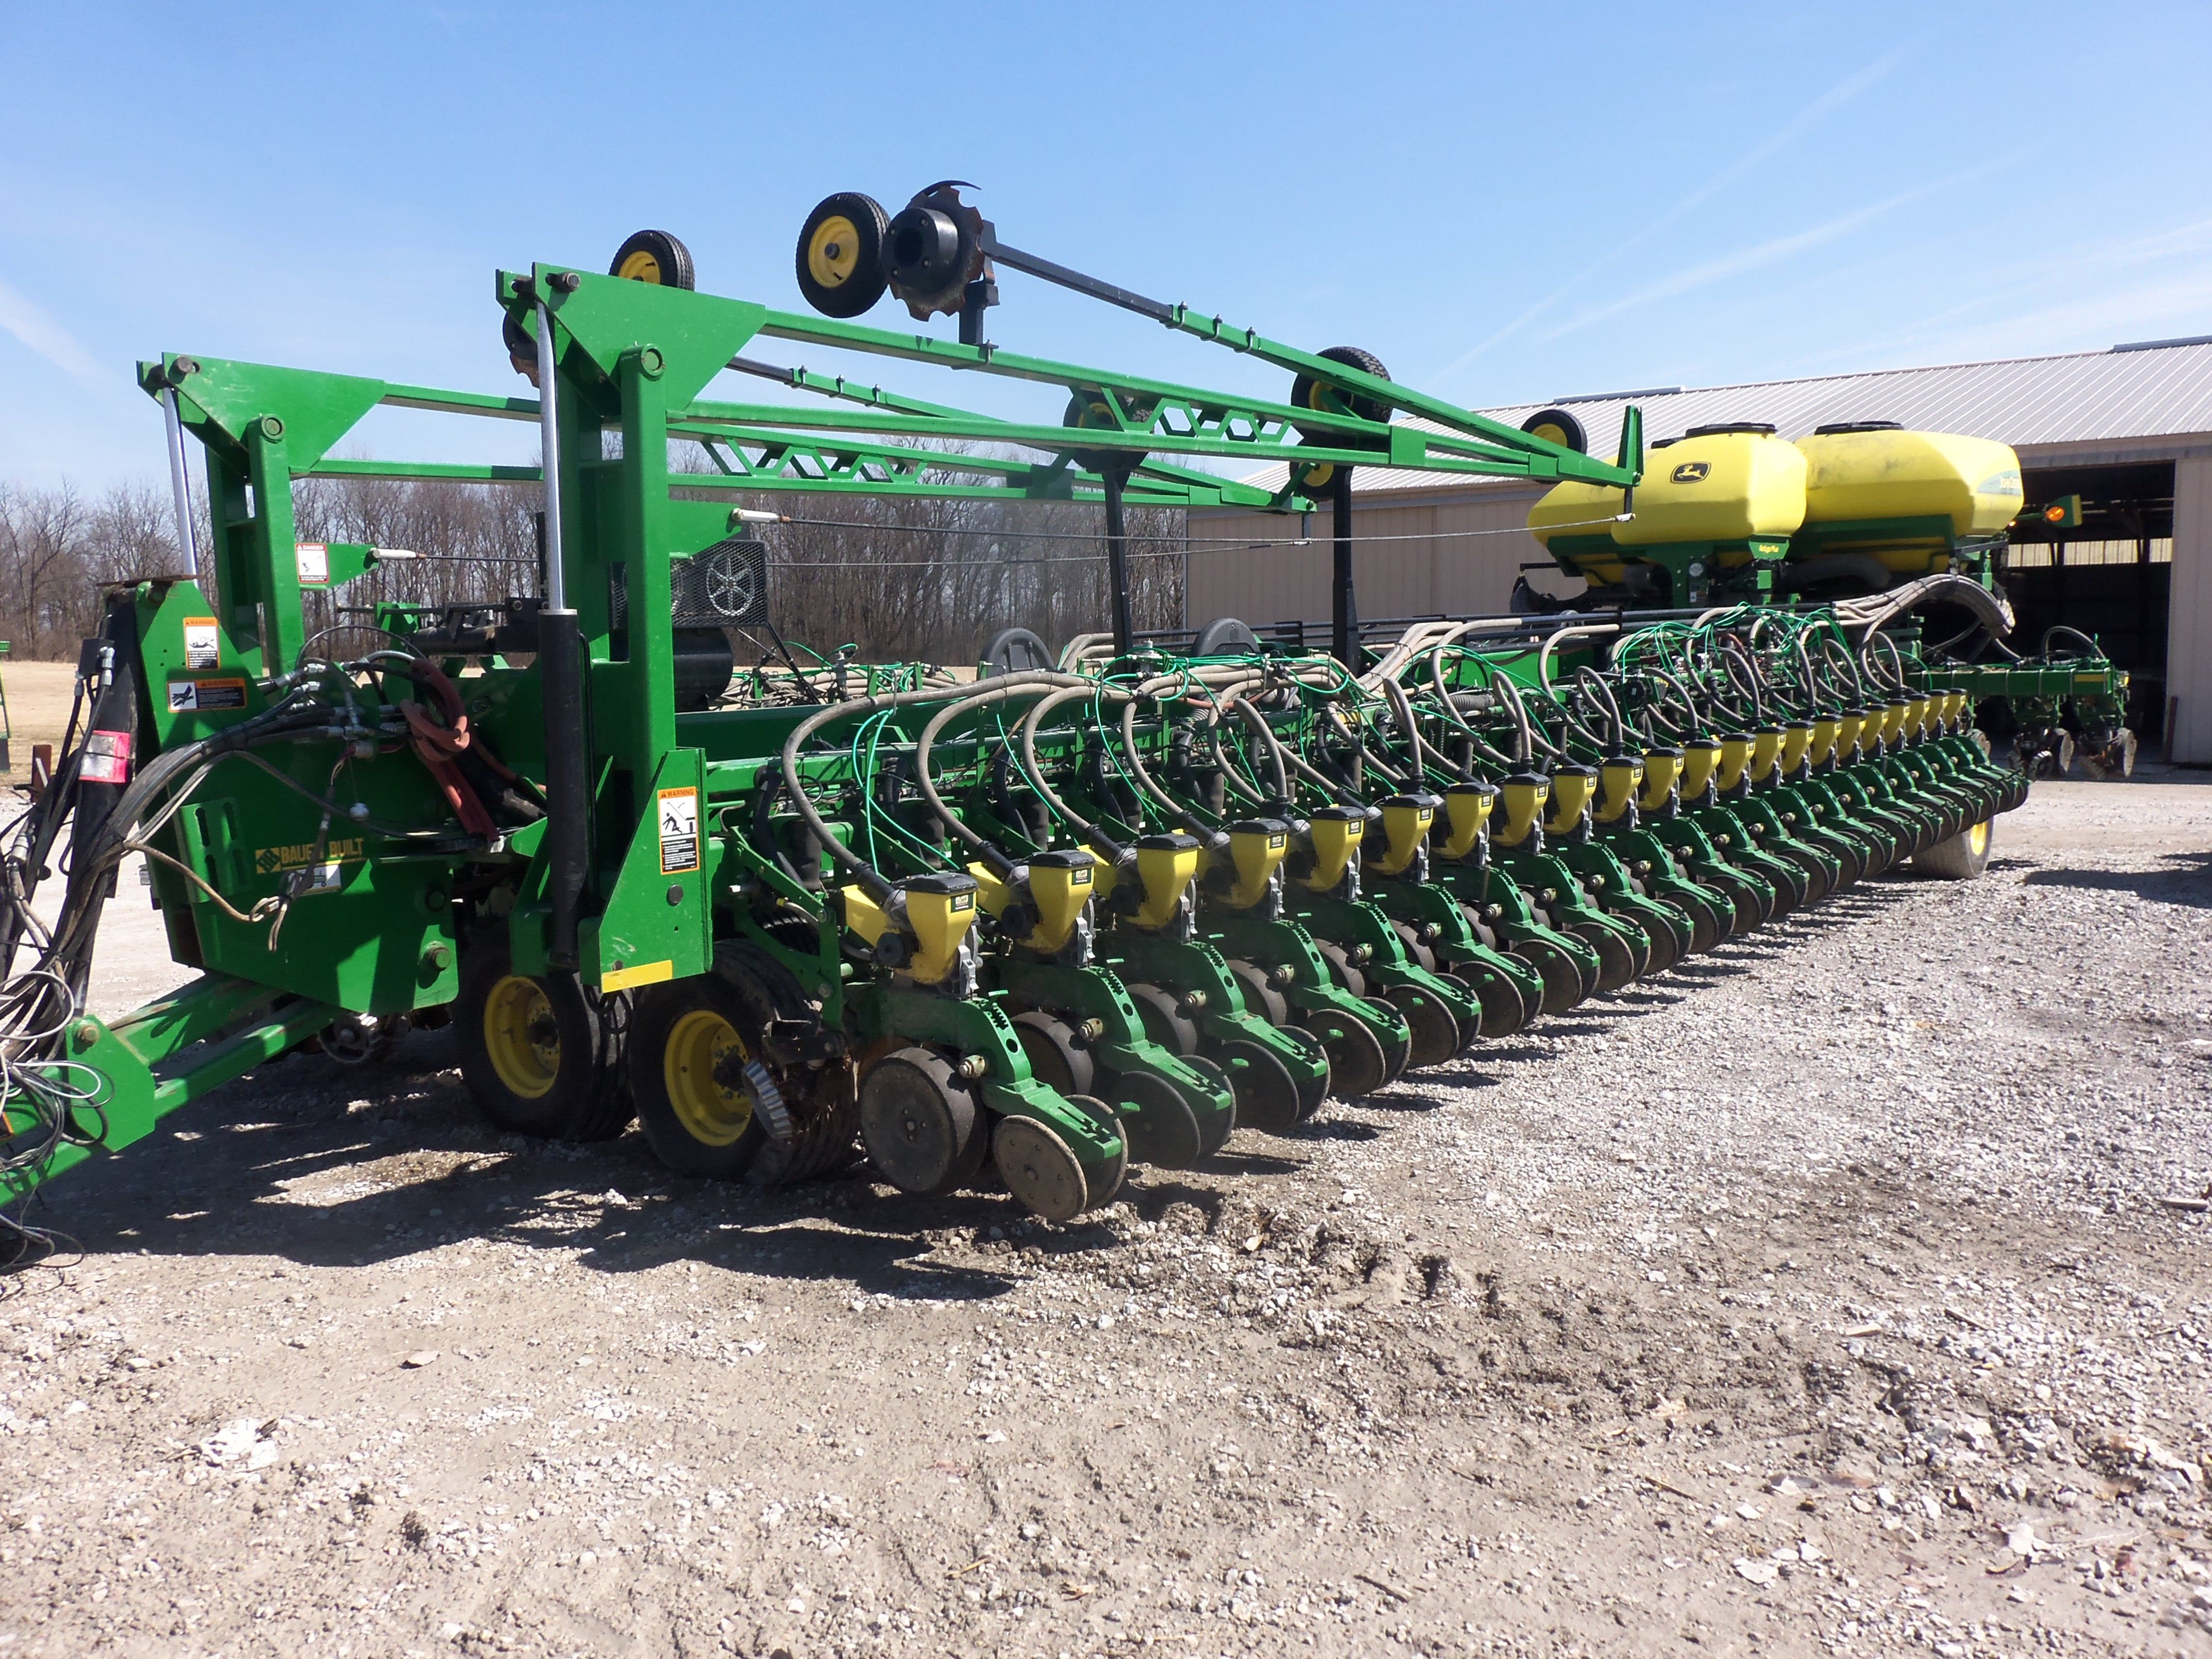 54 Row 2012 John Deere Db90 This Is The Largest Corn Planter I Have